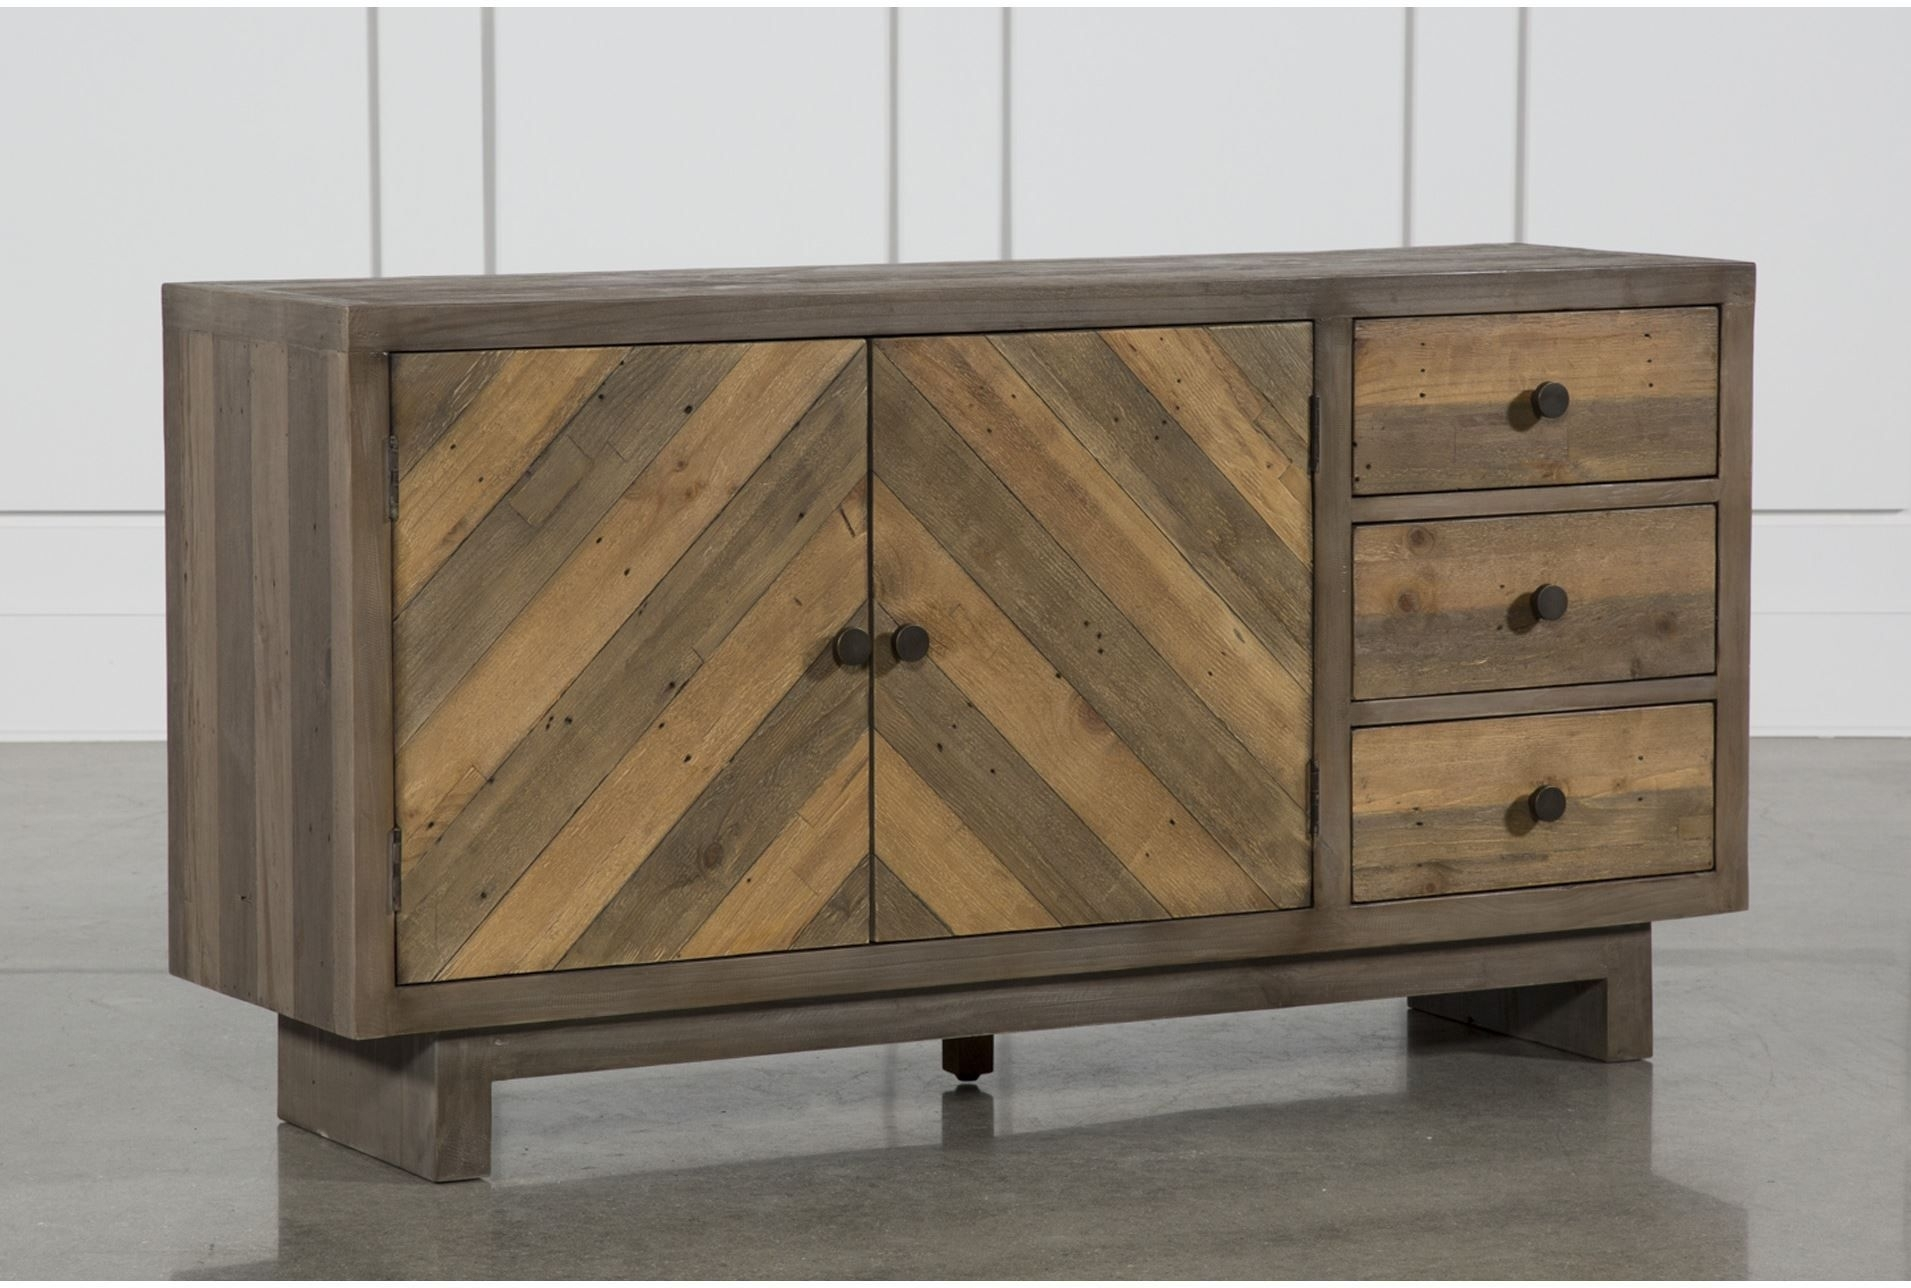 Otb Aged Pine 3-Drawer/2-Door Sideboard, Brown | Pinterest | Products in Oil Pale Finish 4-Door Sideboards (Image 24 of 30)